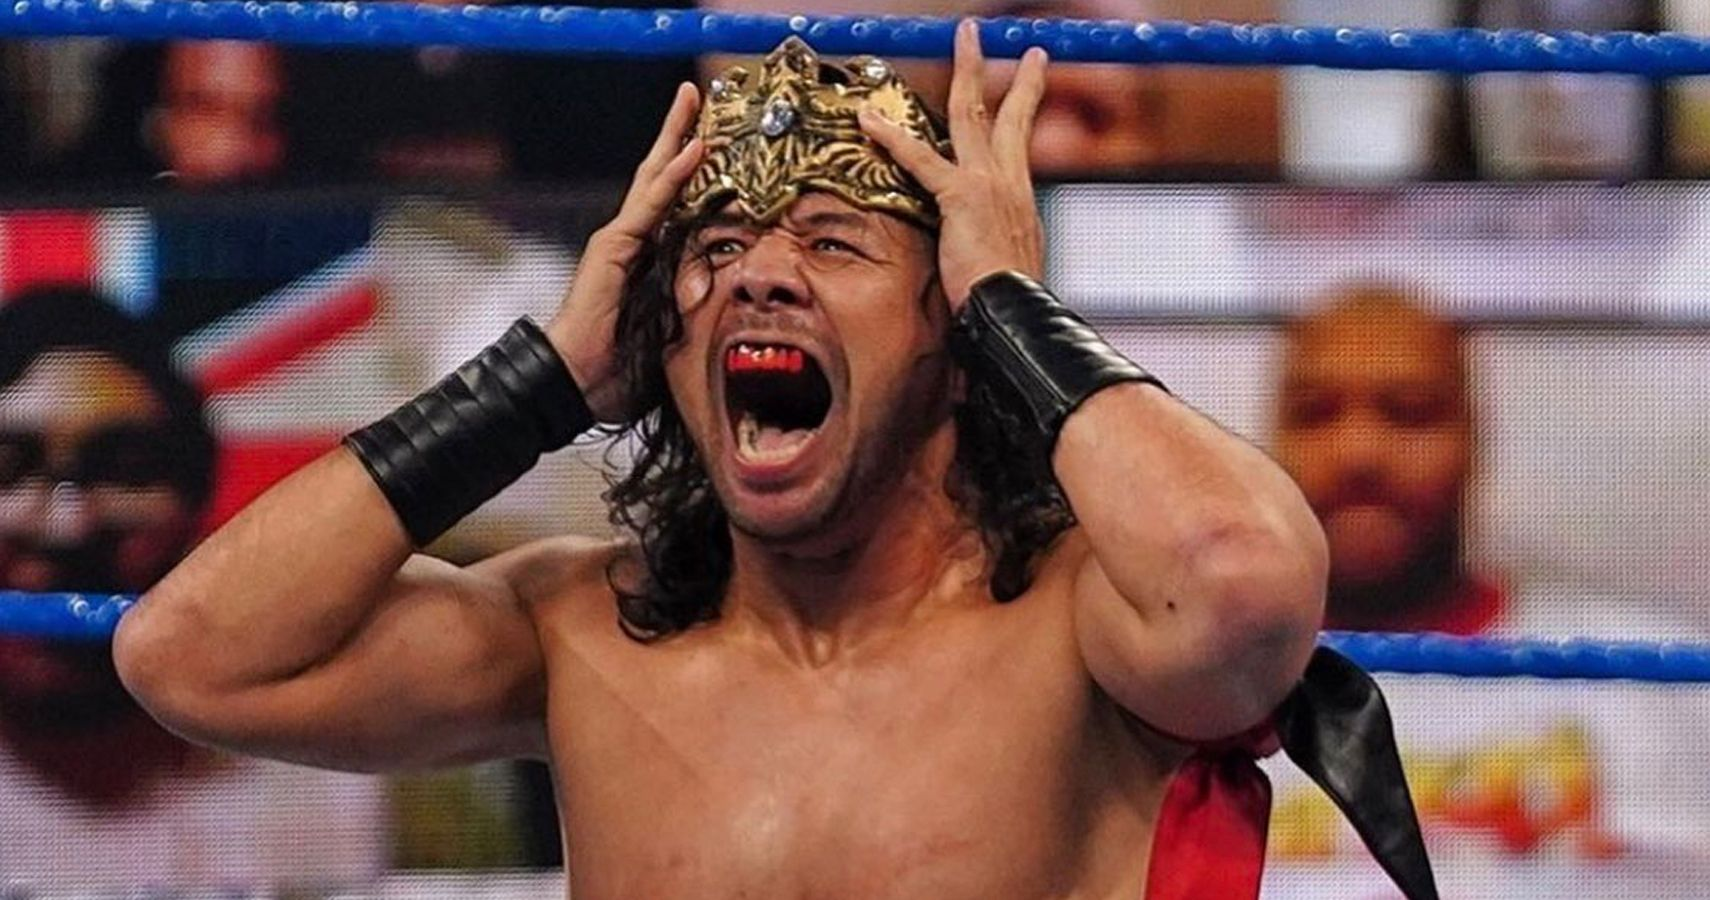 WWE Teases King vs. King Match With Nakamura Character Change Coming [Theory]